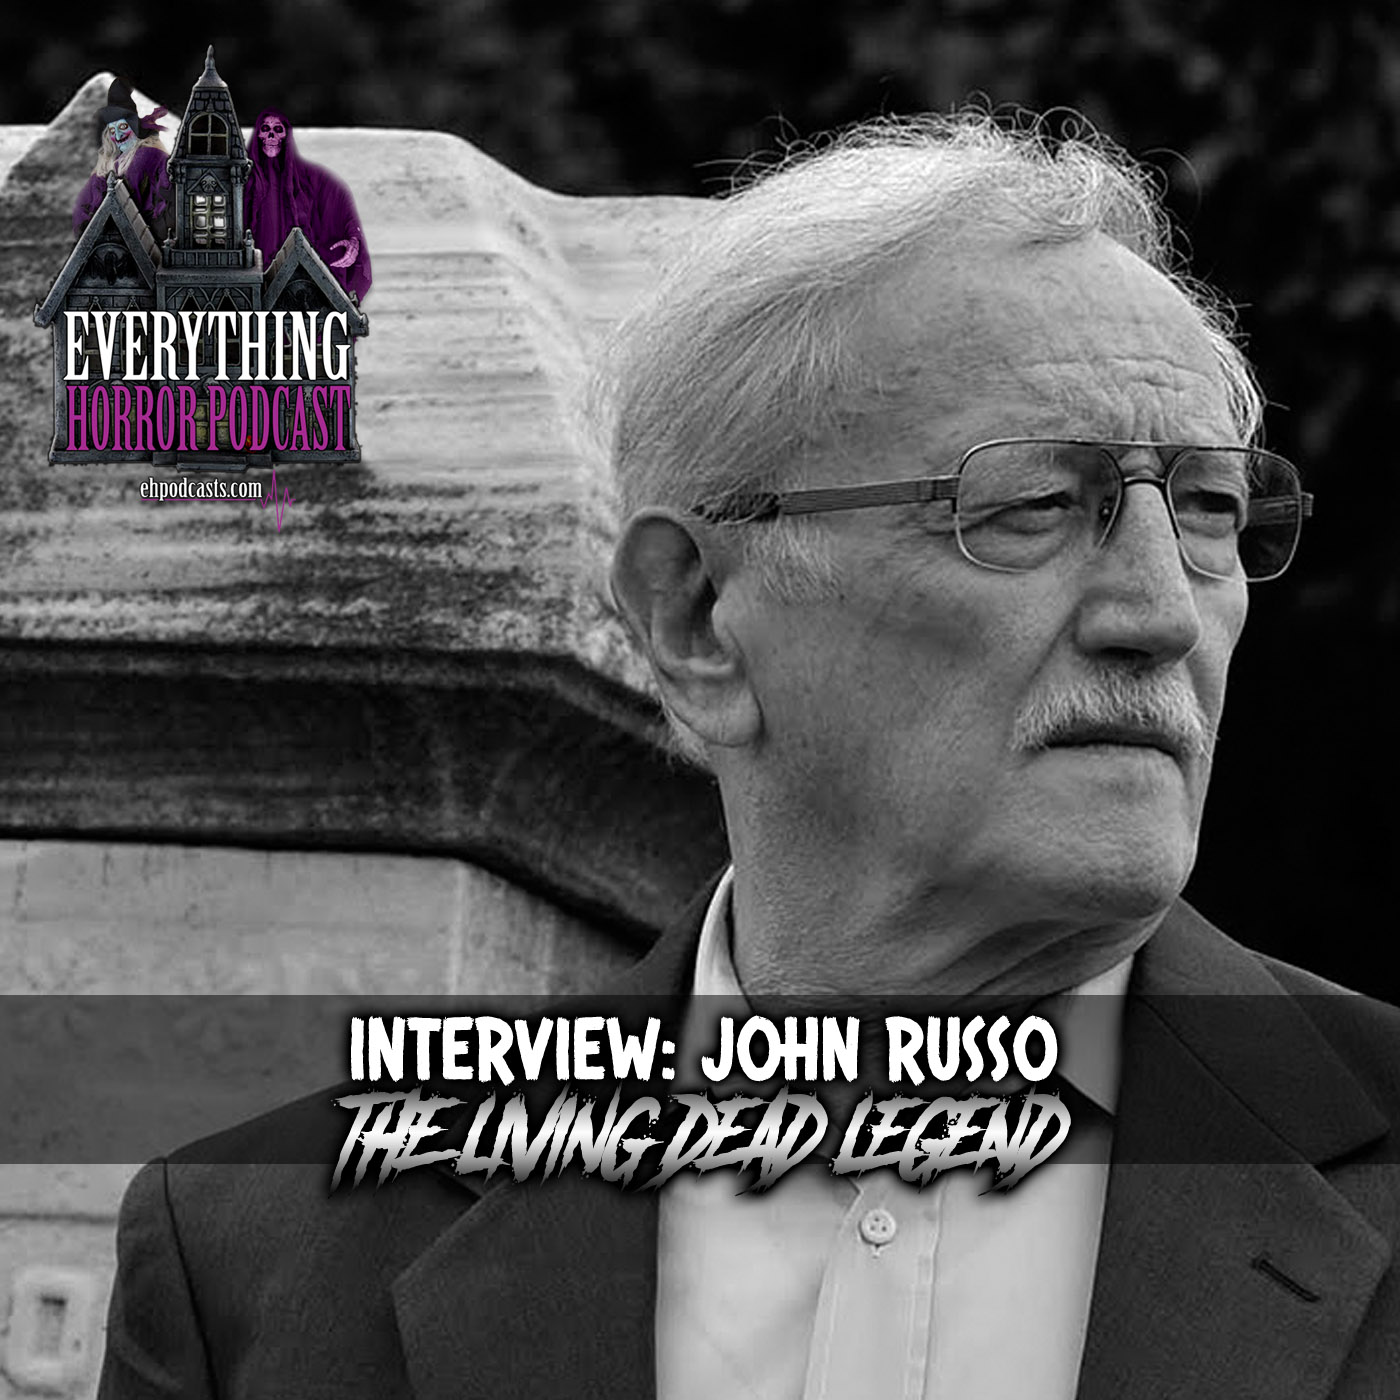 Interview: John Russo | The Living Dead Legend